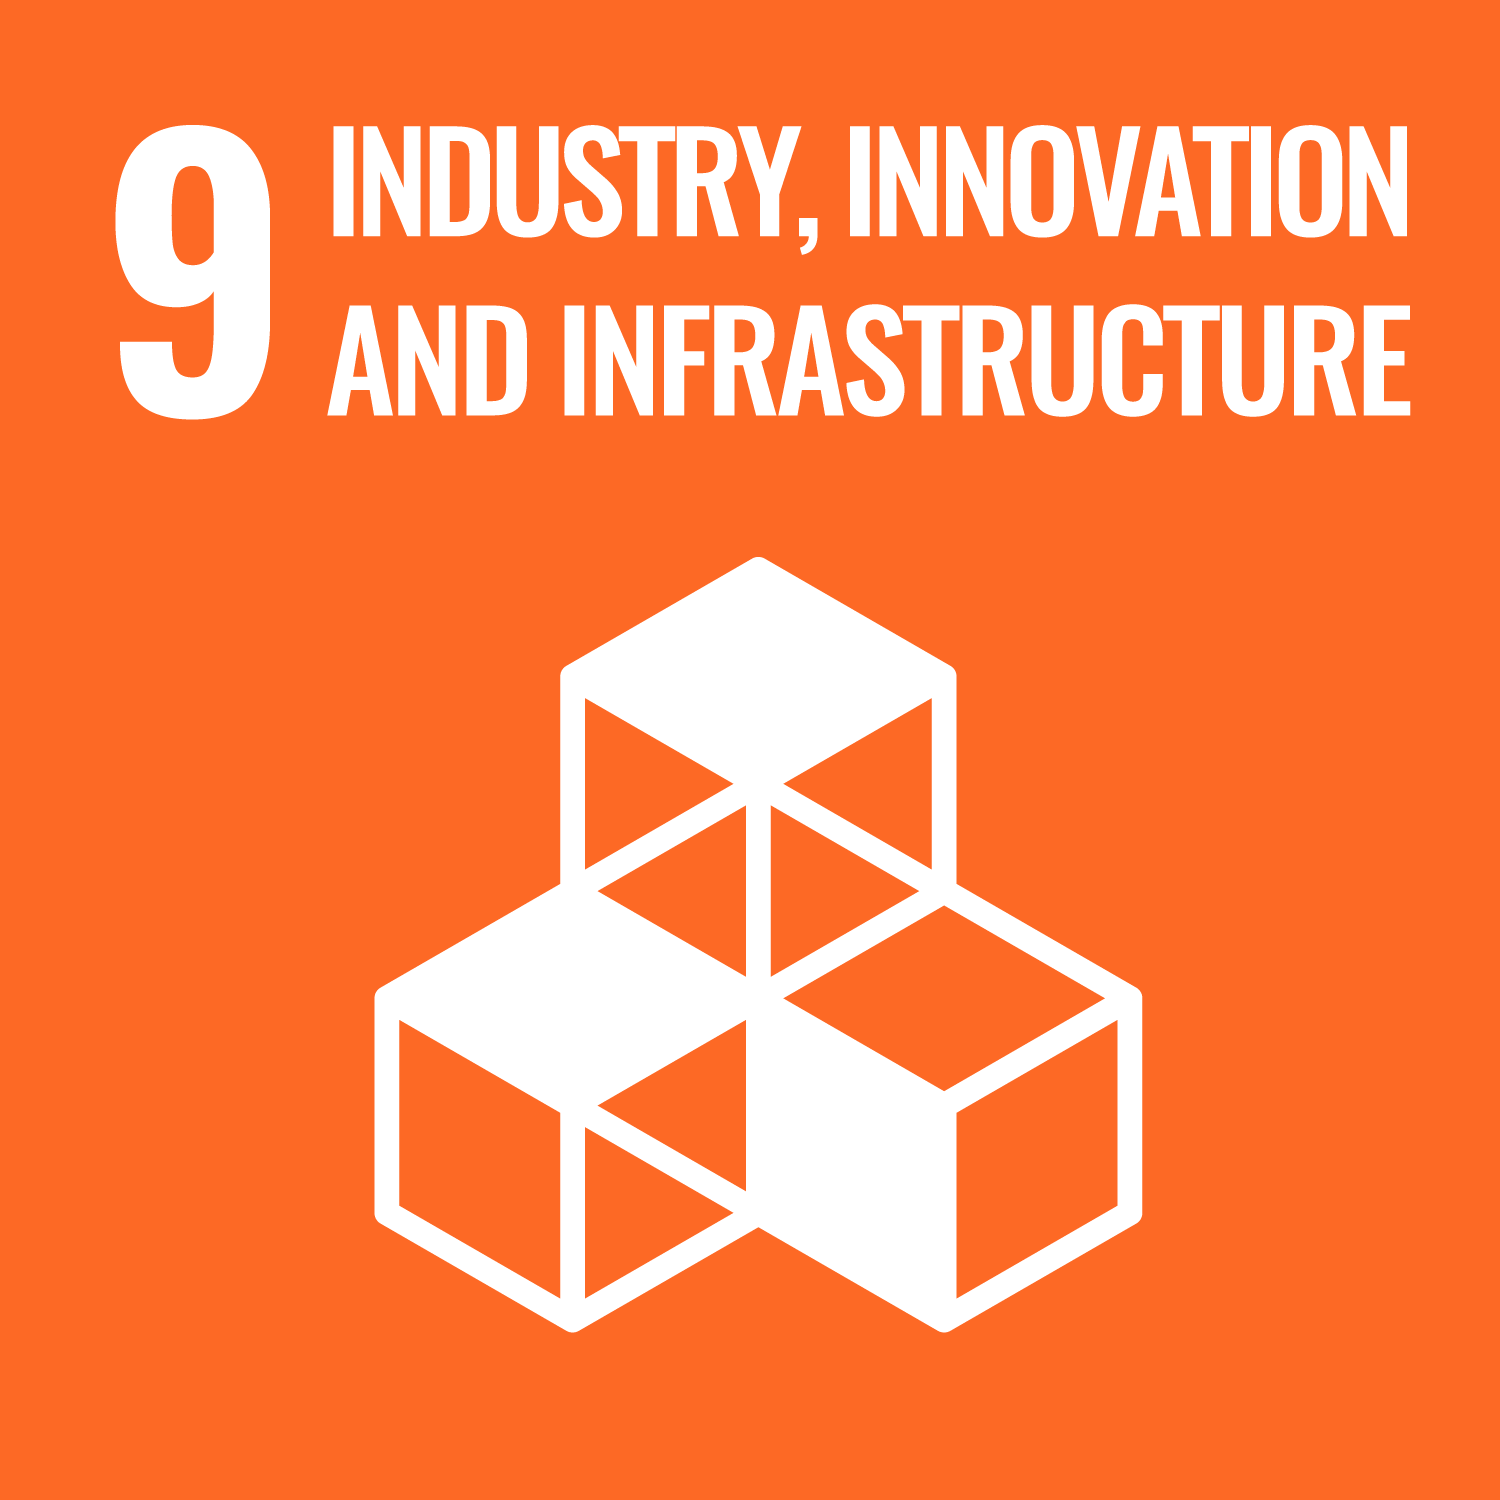 Goal 09 Industry, Innovation and Infrastructure